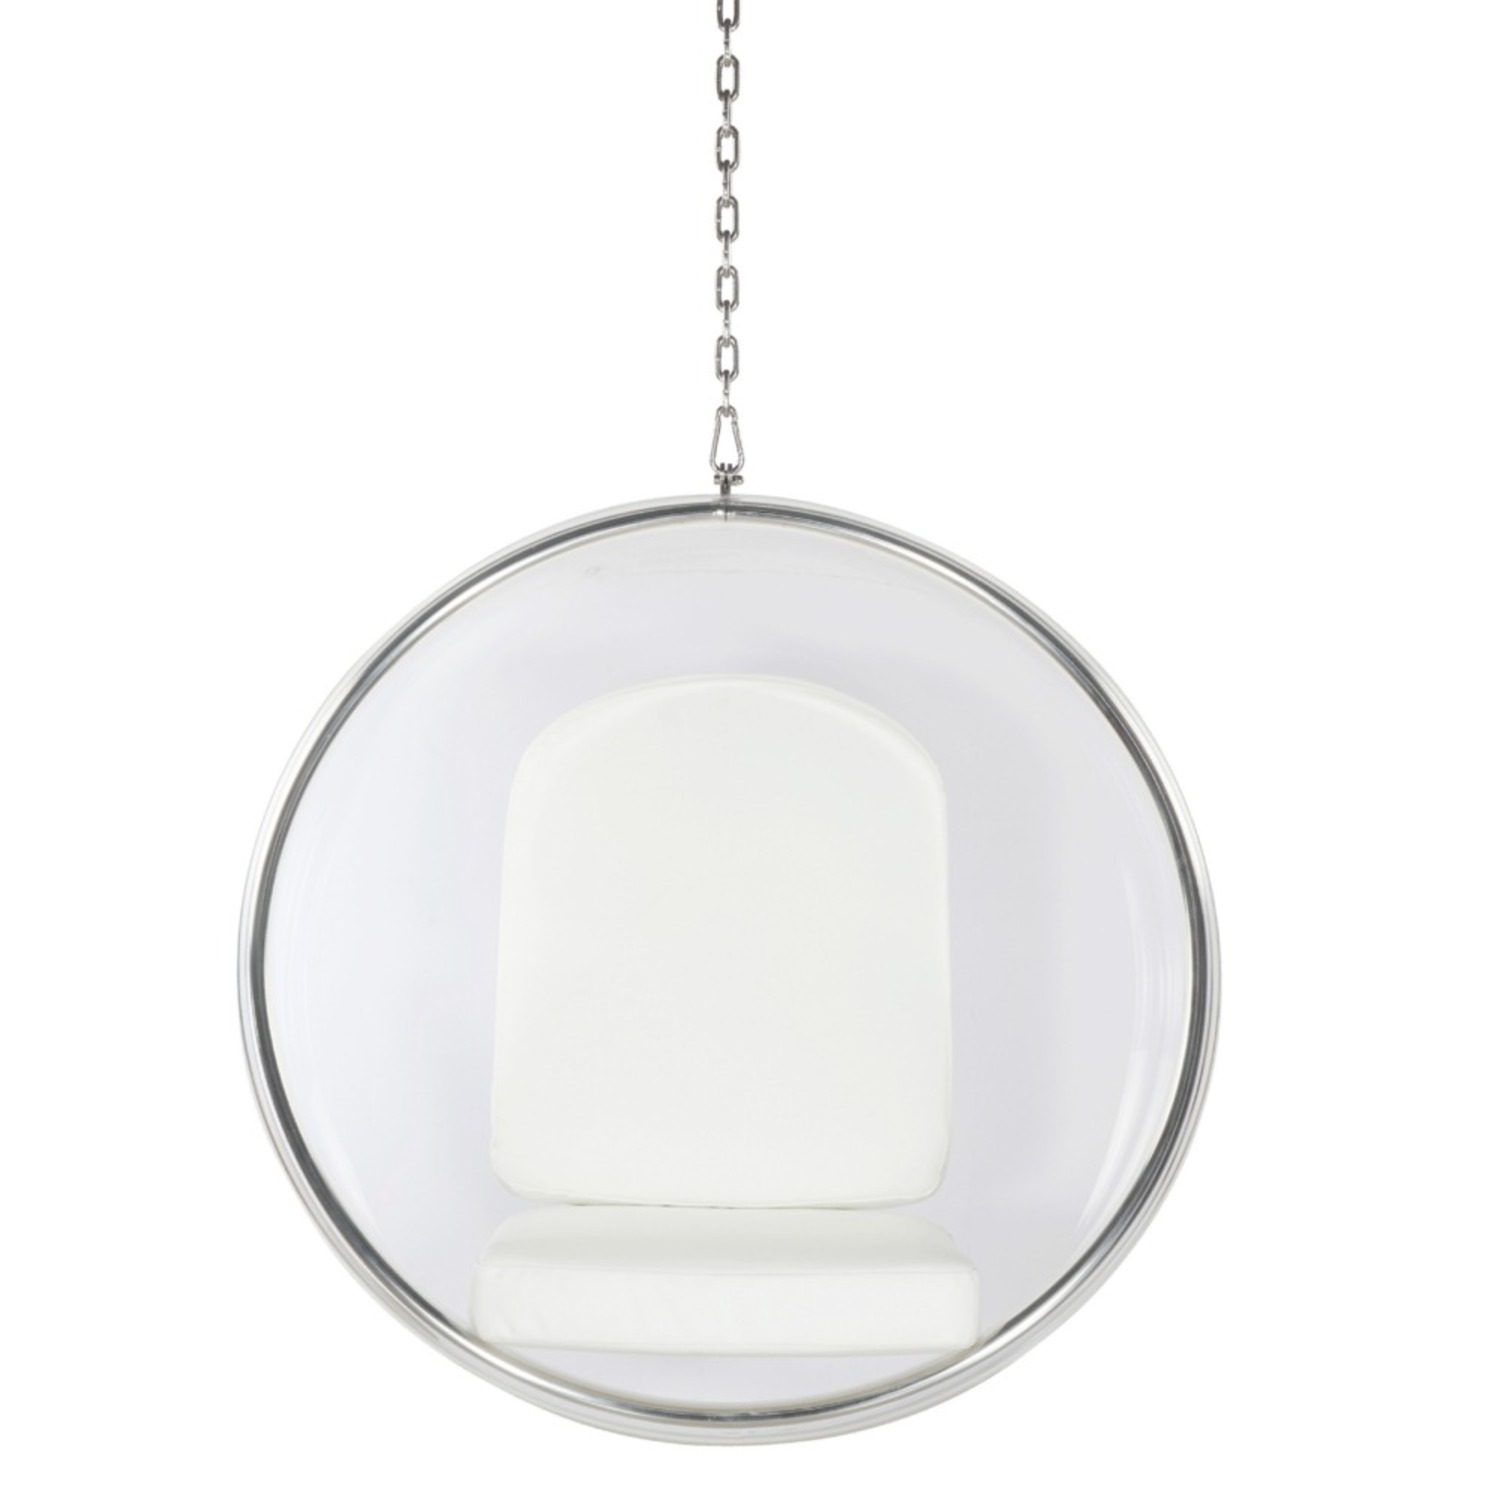 Hanging Chair In Clear Acrylic & White PU Leather - image-5